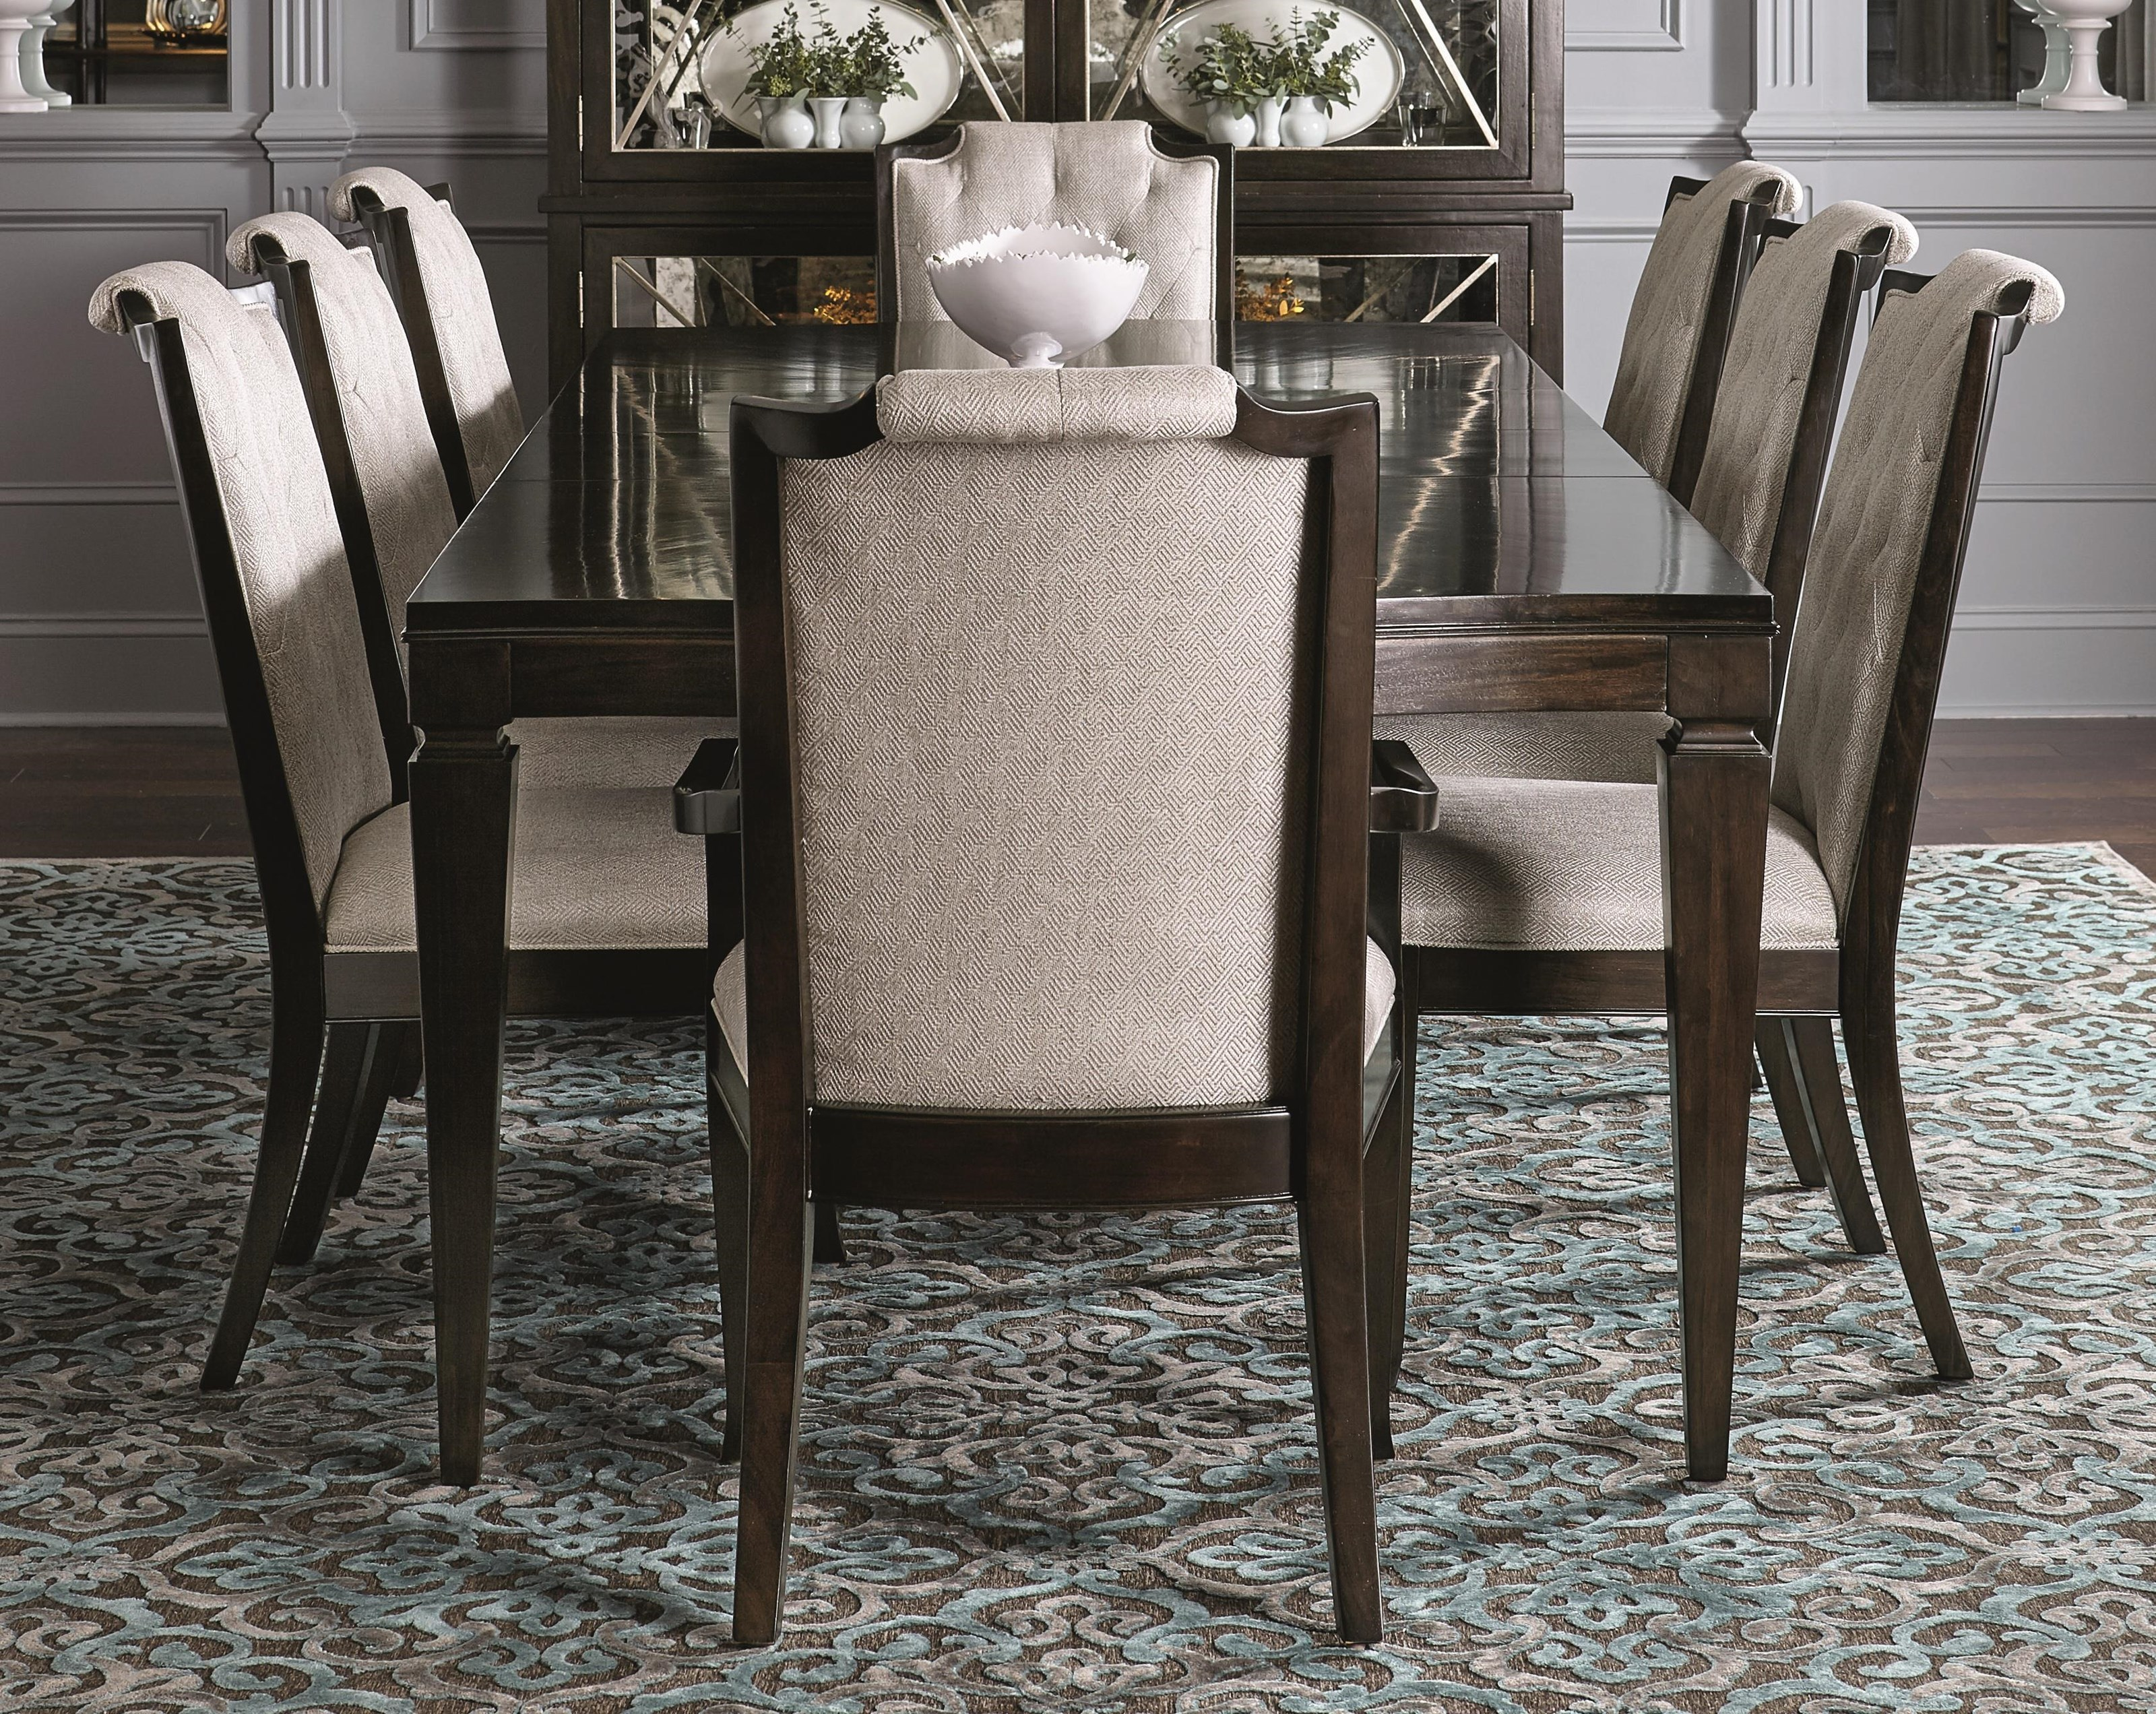 Bernhardt Sutton House 5 Piece Dining Set includes Table and 4